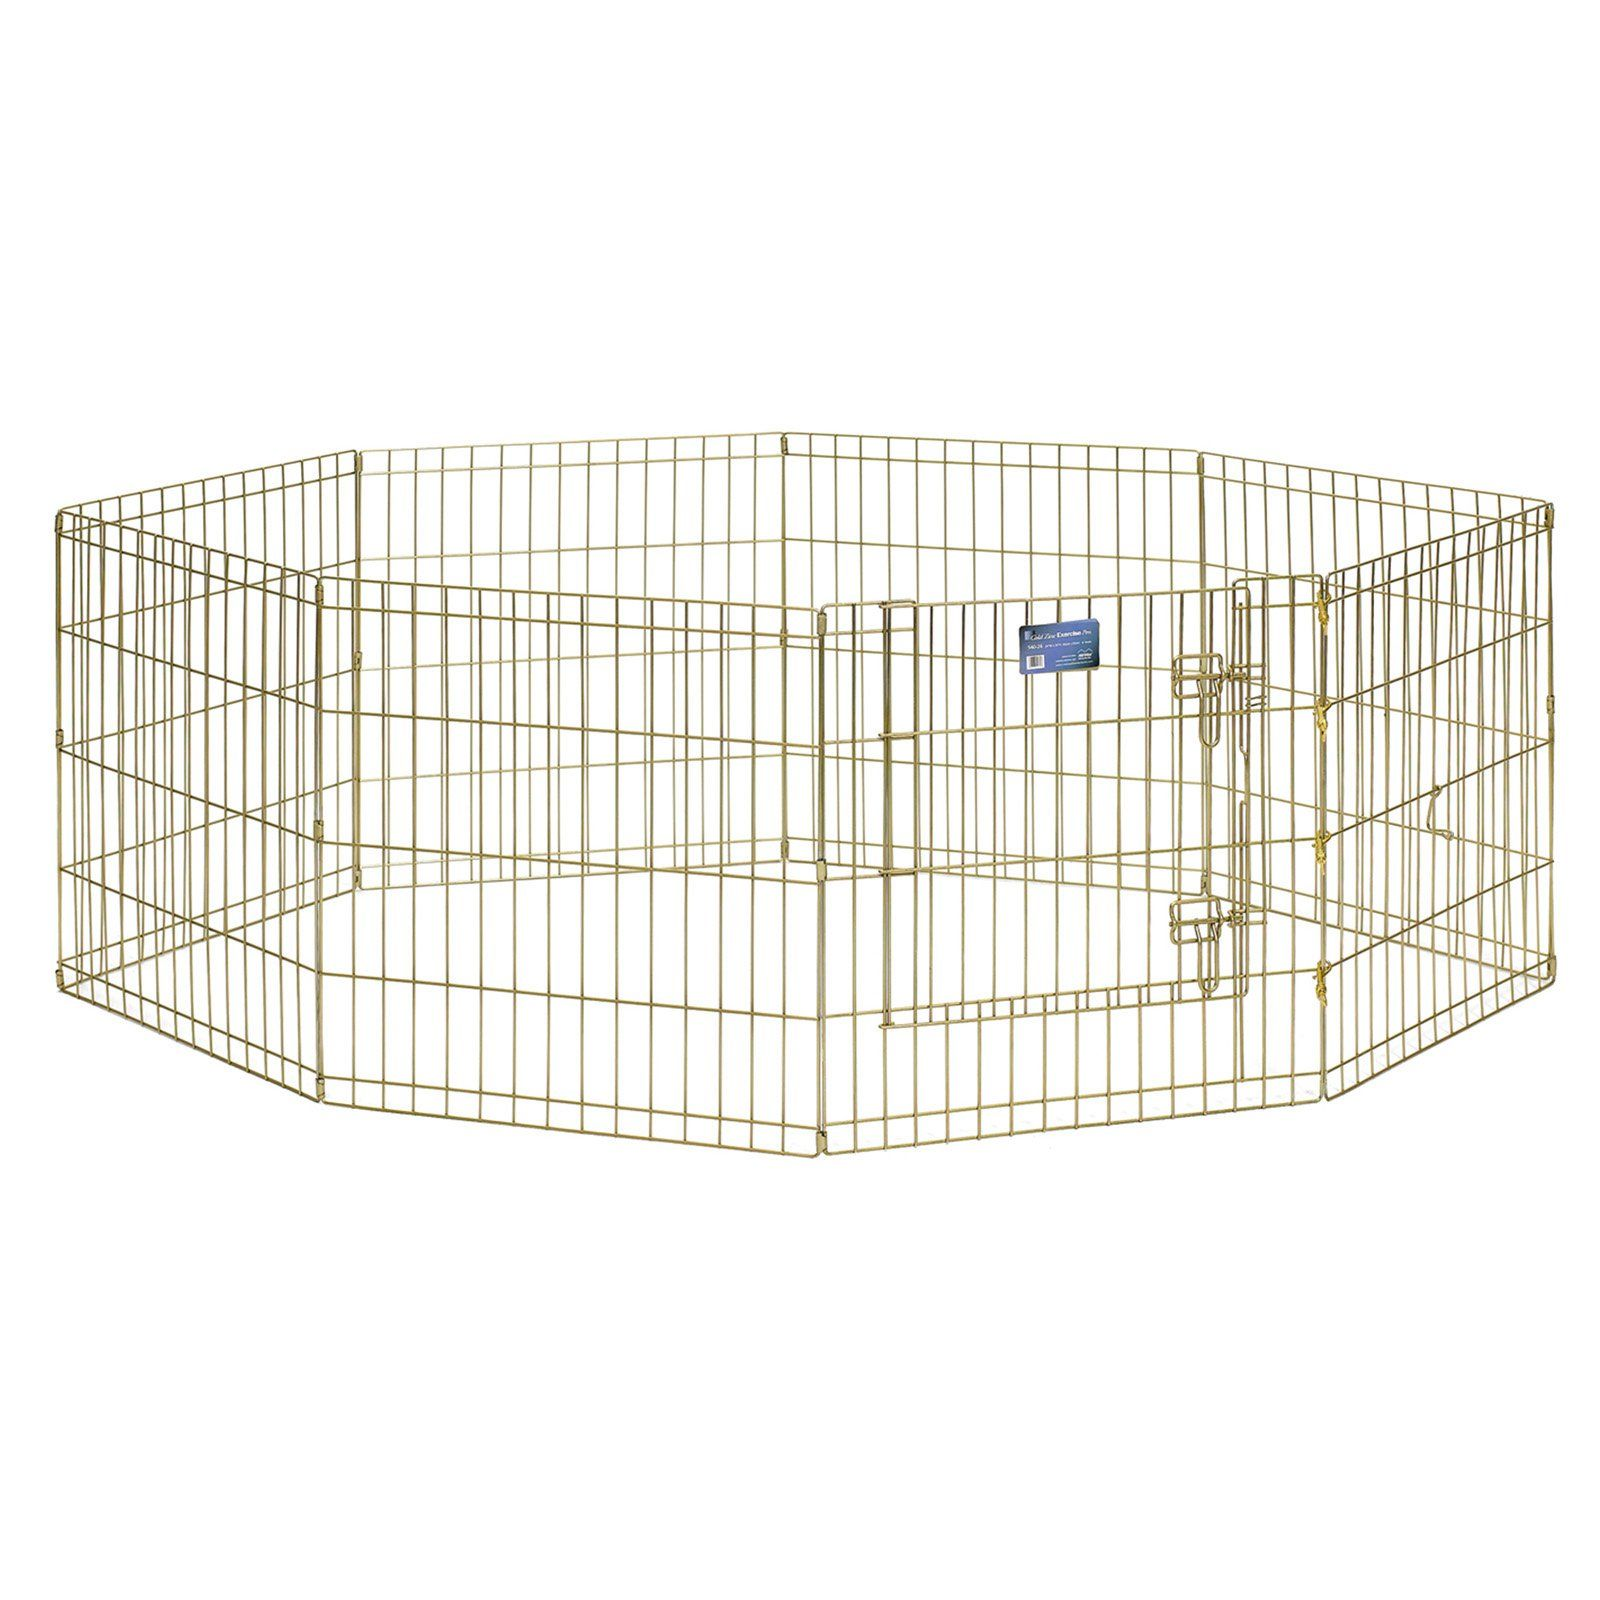 Midwest Homes For Pets 8 Panel Exercise Pen Pet Playpen With